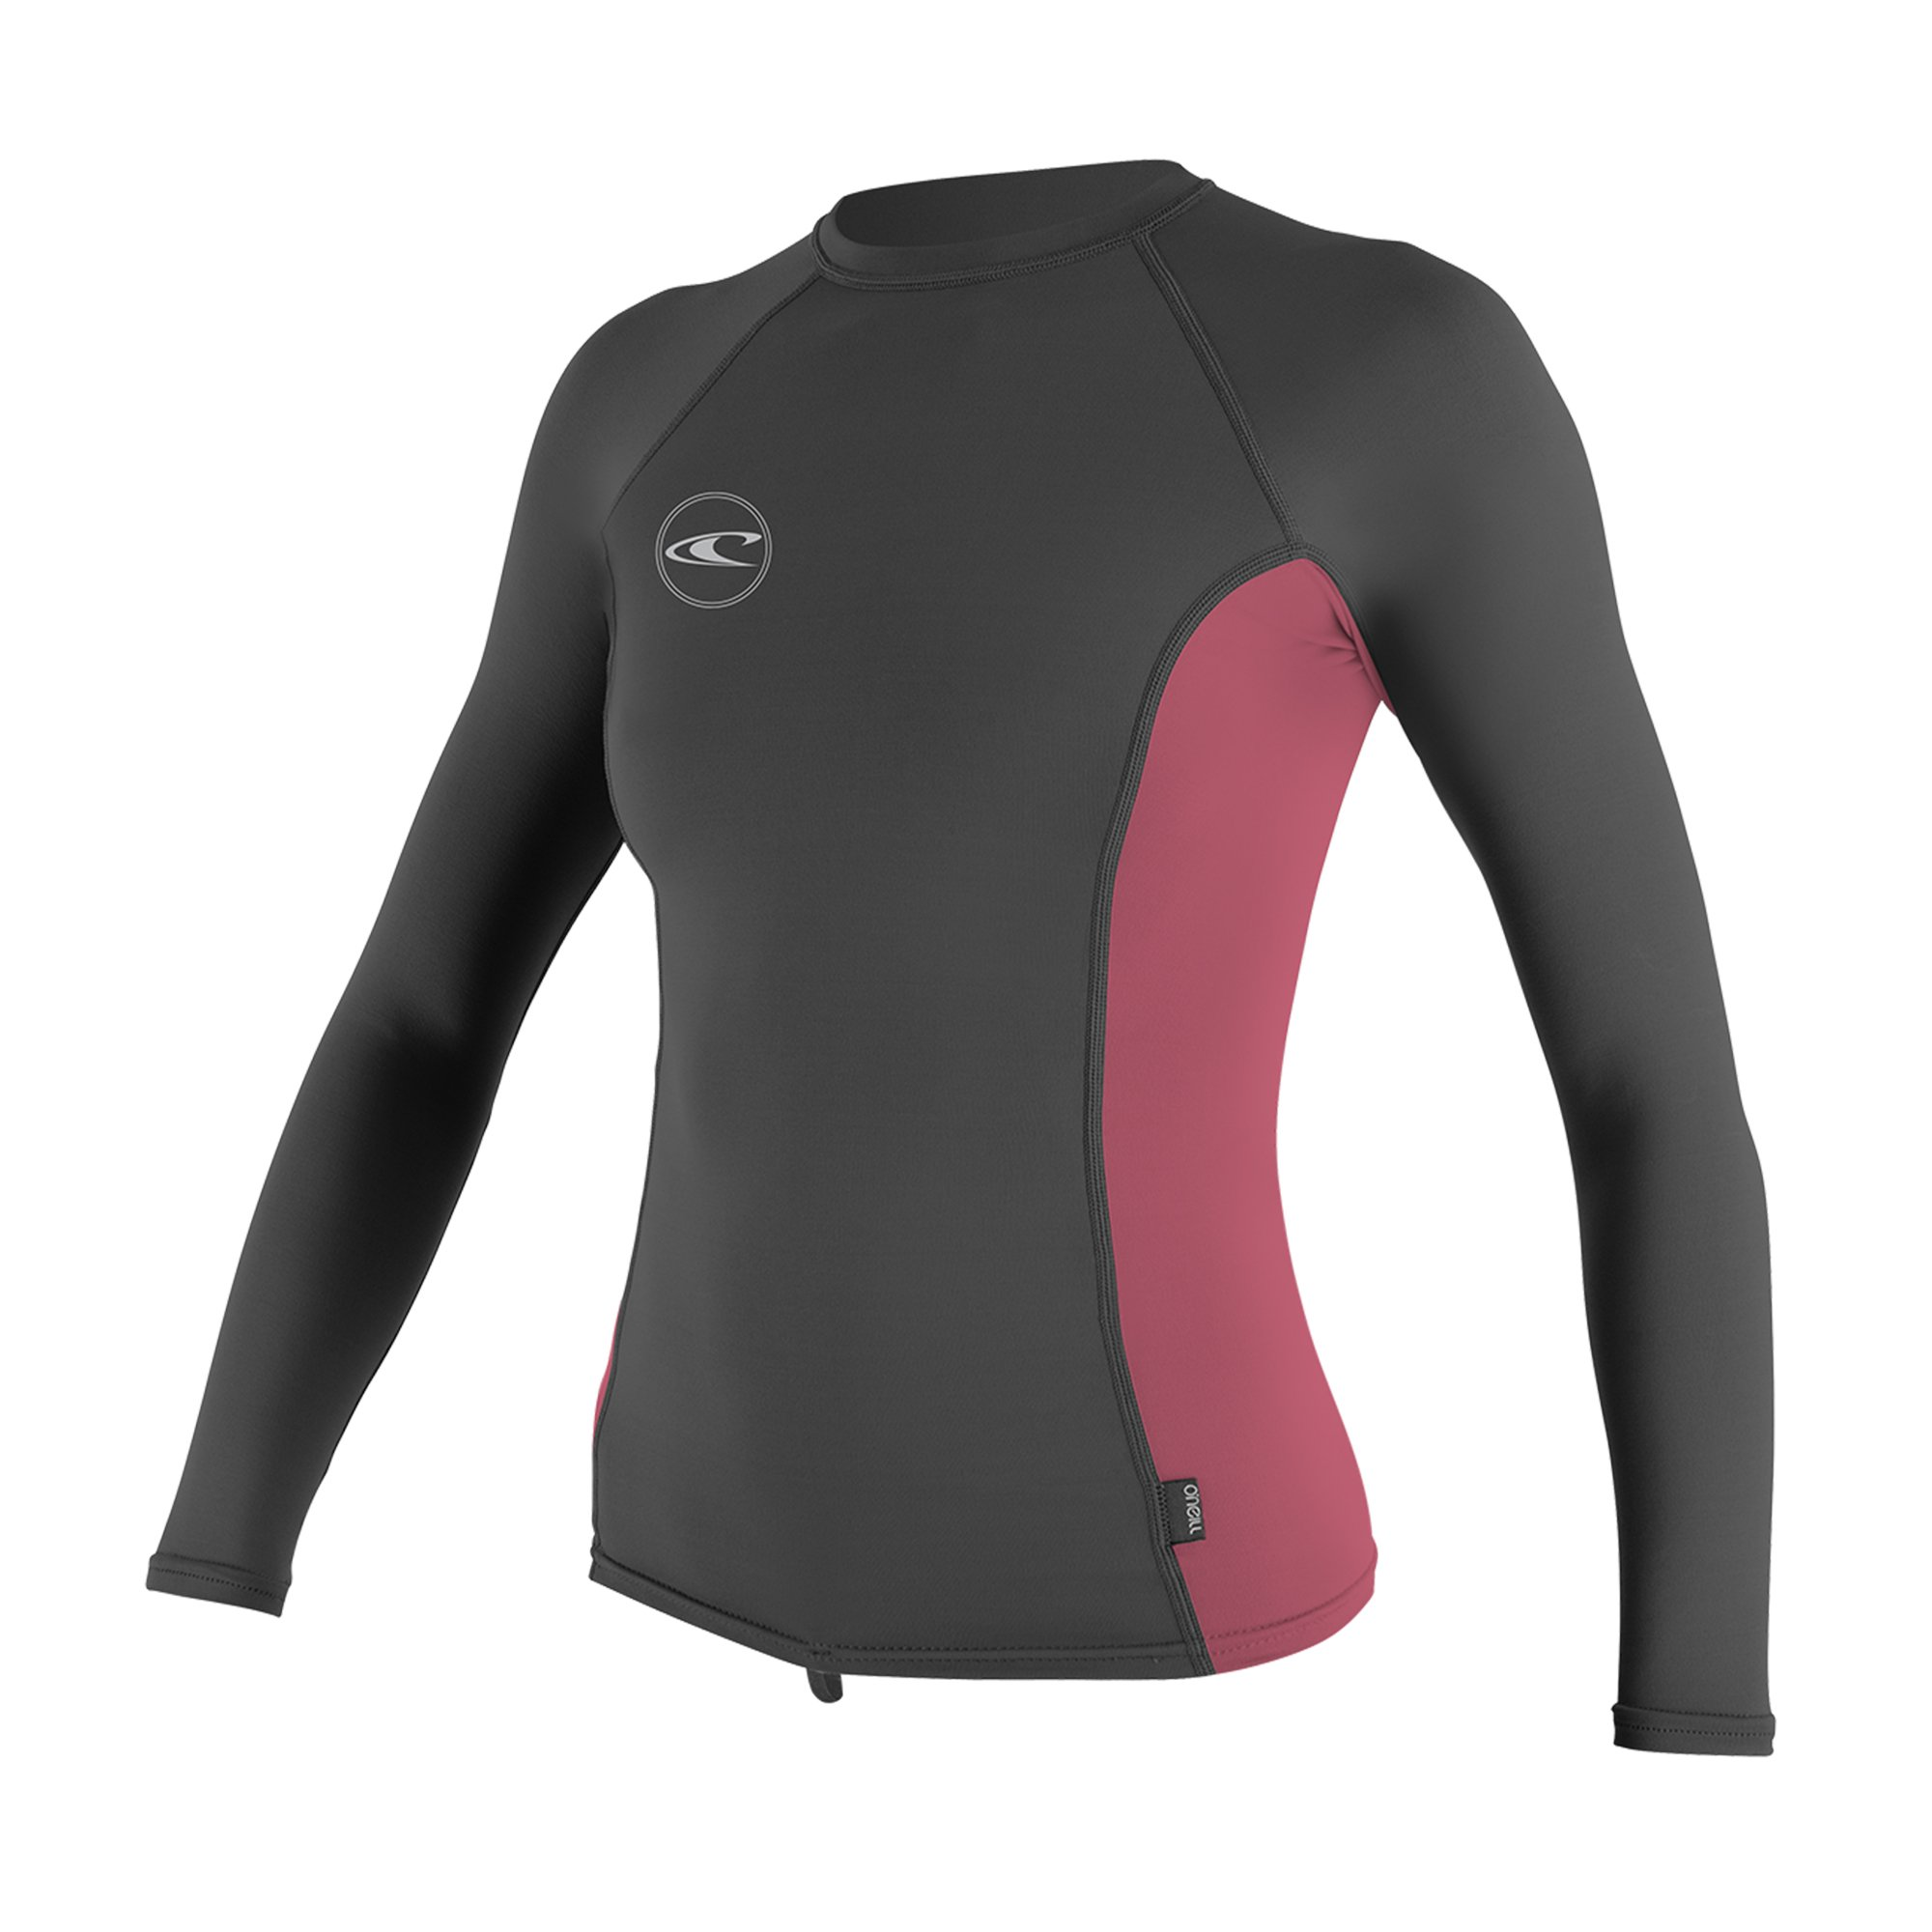 O'NEILL Women's Basic Long Sleeve Rash Guard, Graph Fox Pink, X-Small by O'NEILL